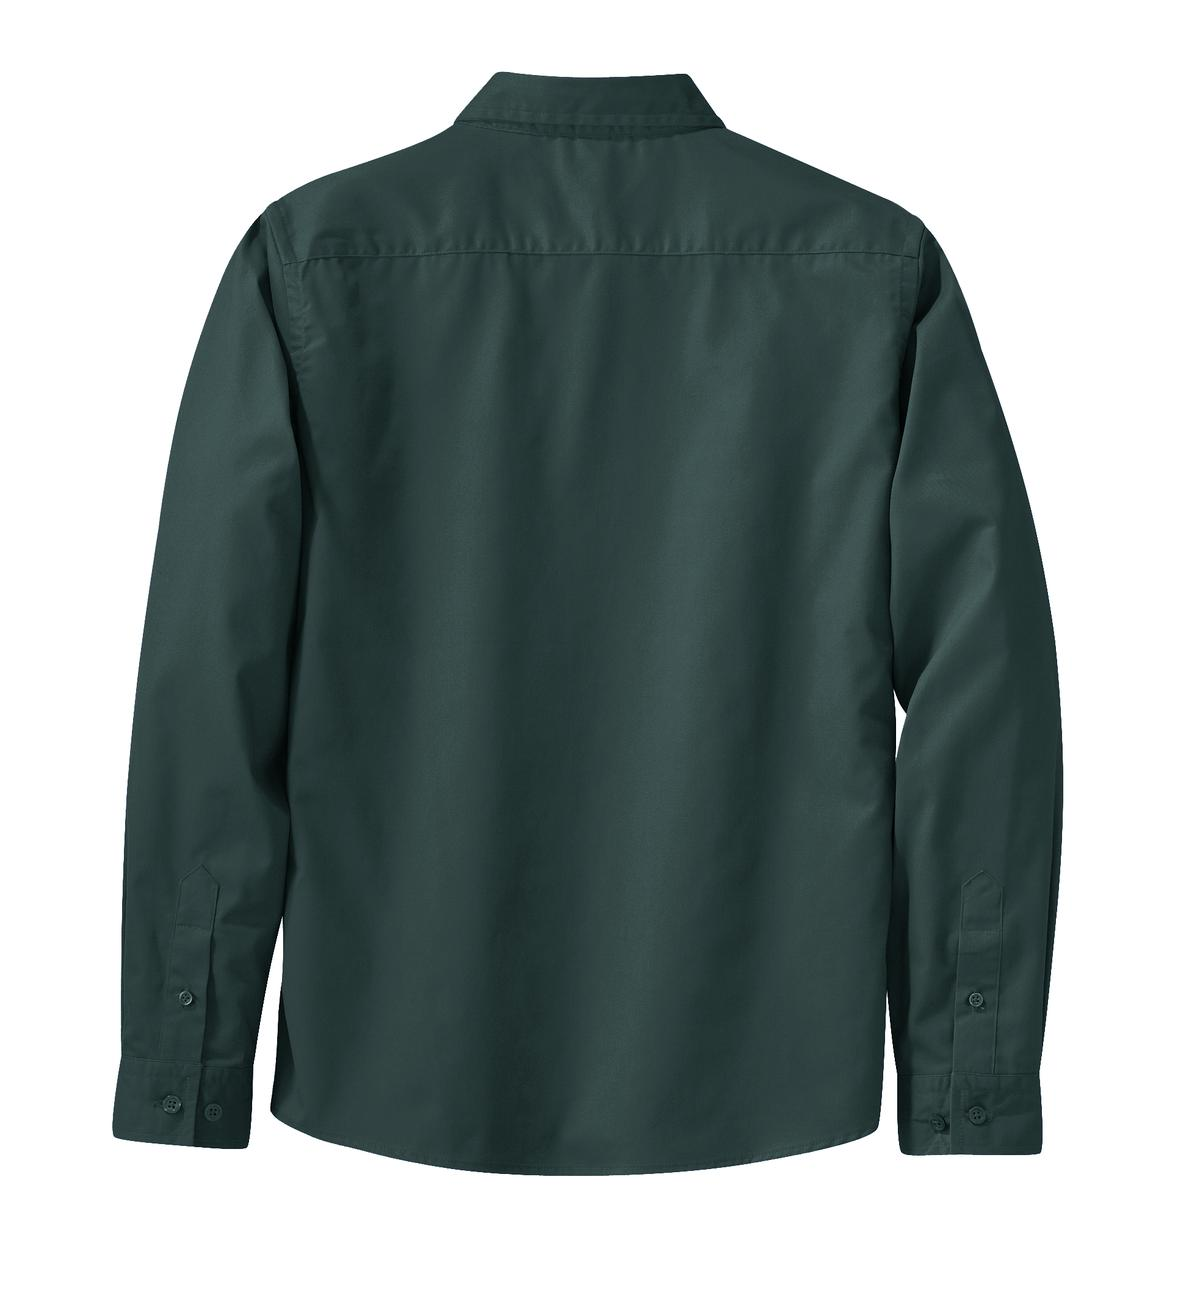 Mafoose Women's Long Sleeve Easy Care Shirt Dark Green/Navy-Back